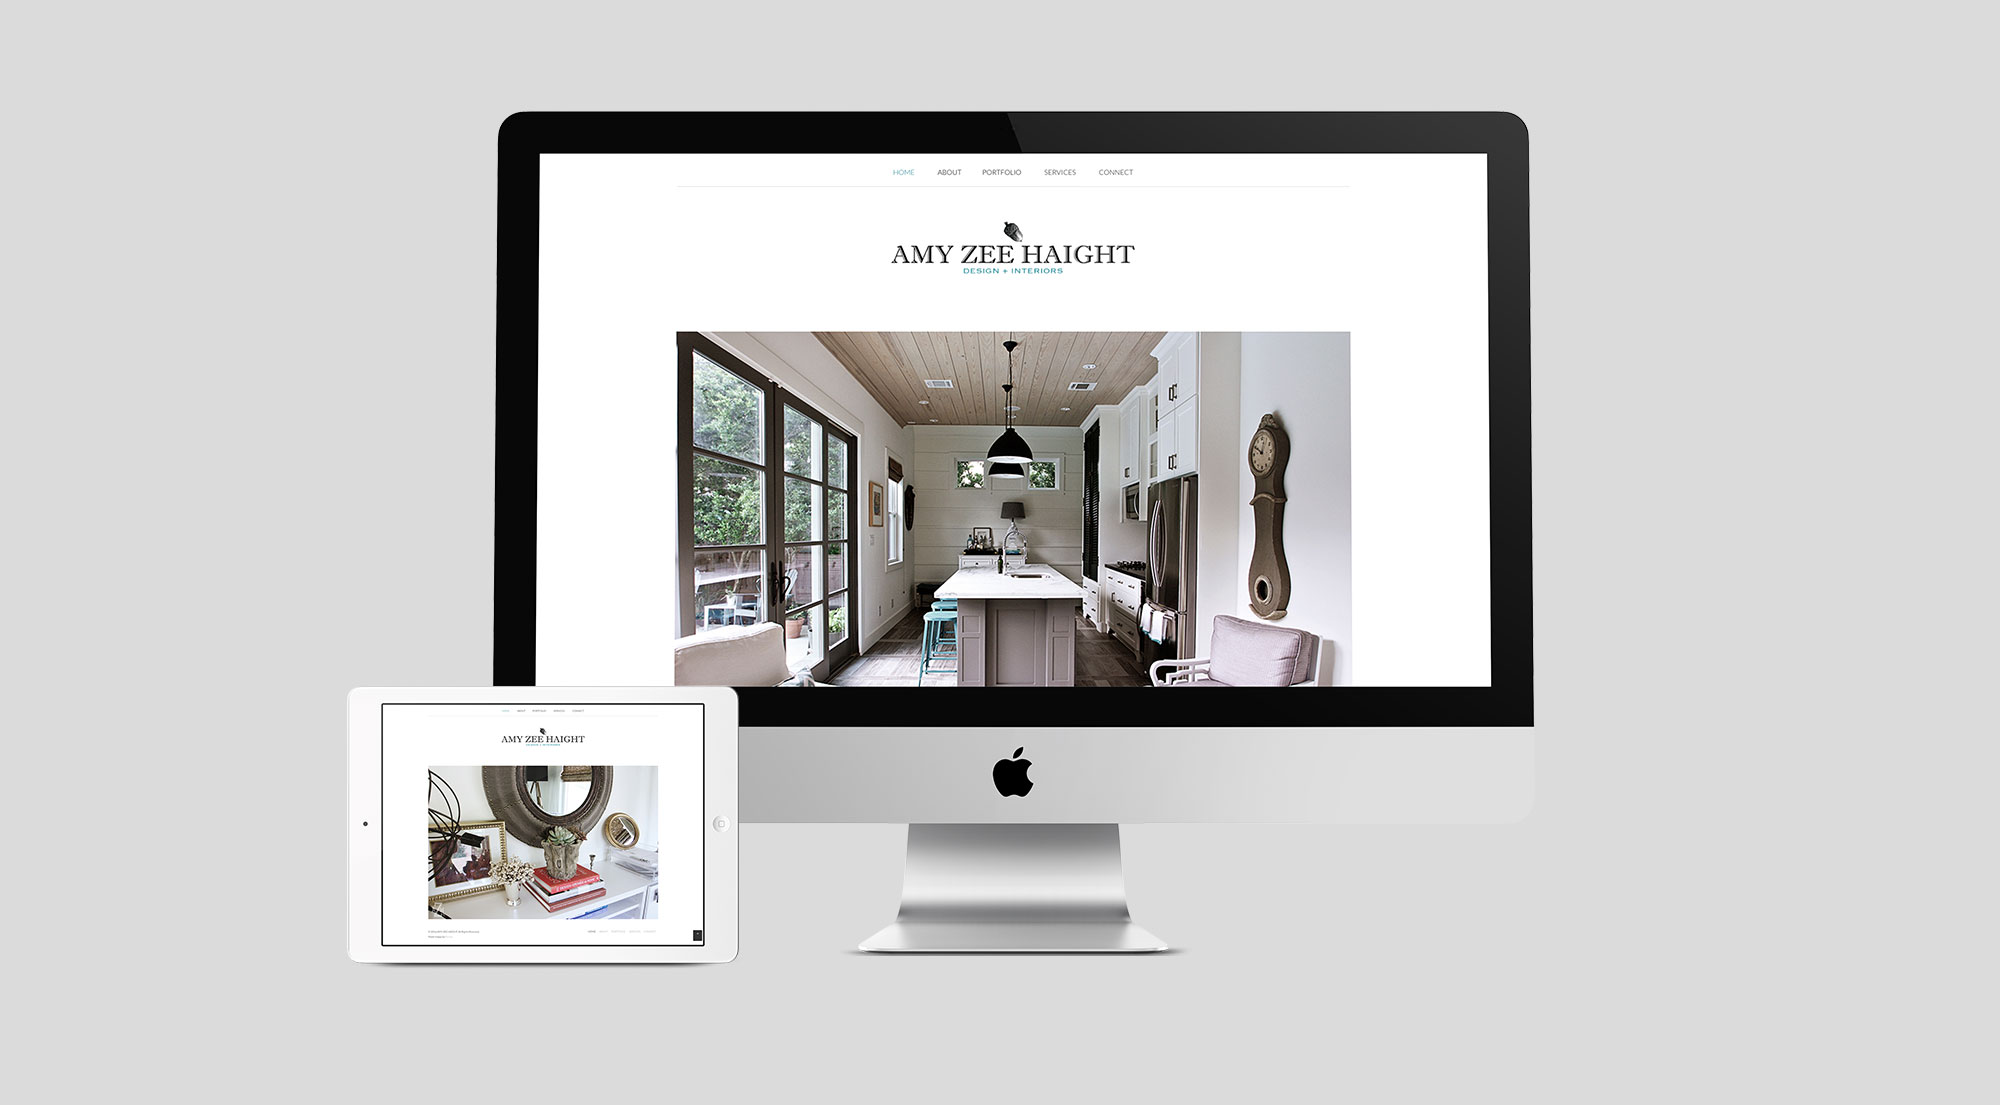 Amy Zee Haight - Website design